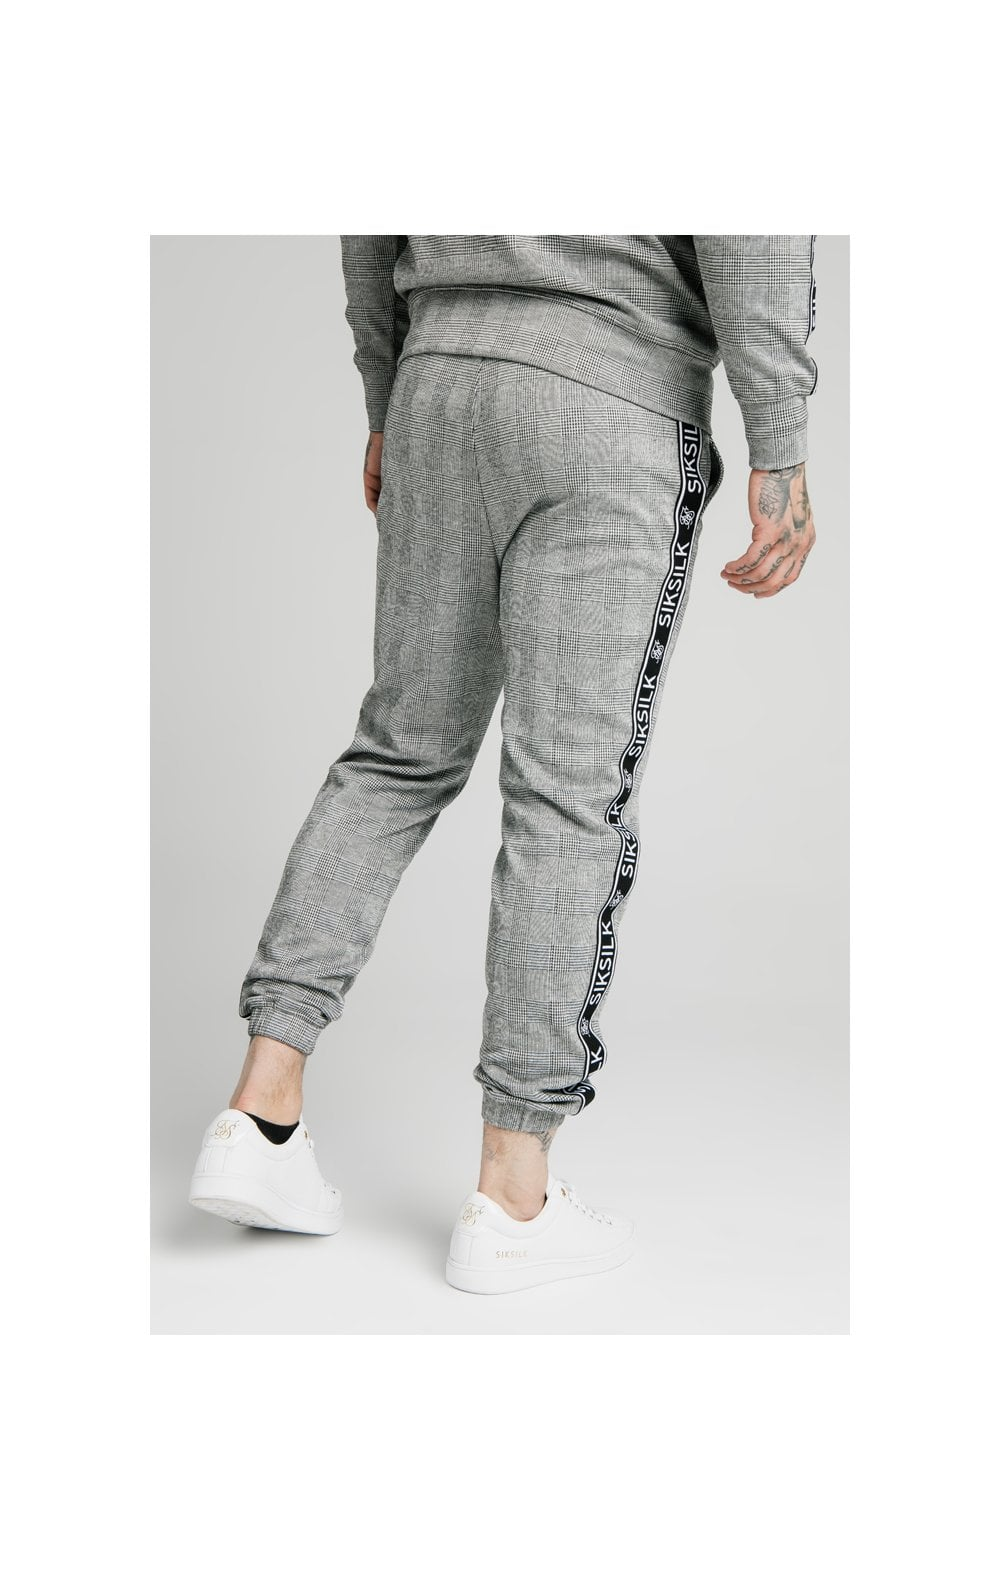 SikSilk Dog Tooth Check Chuffed Pant - Black & White (2)